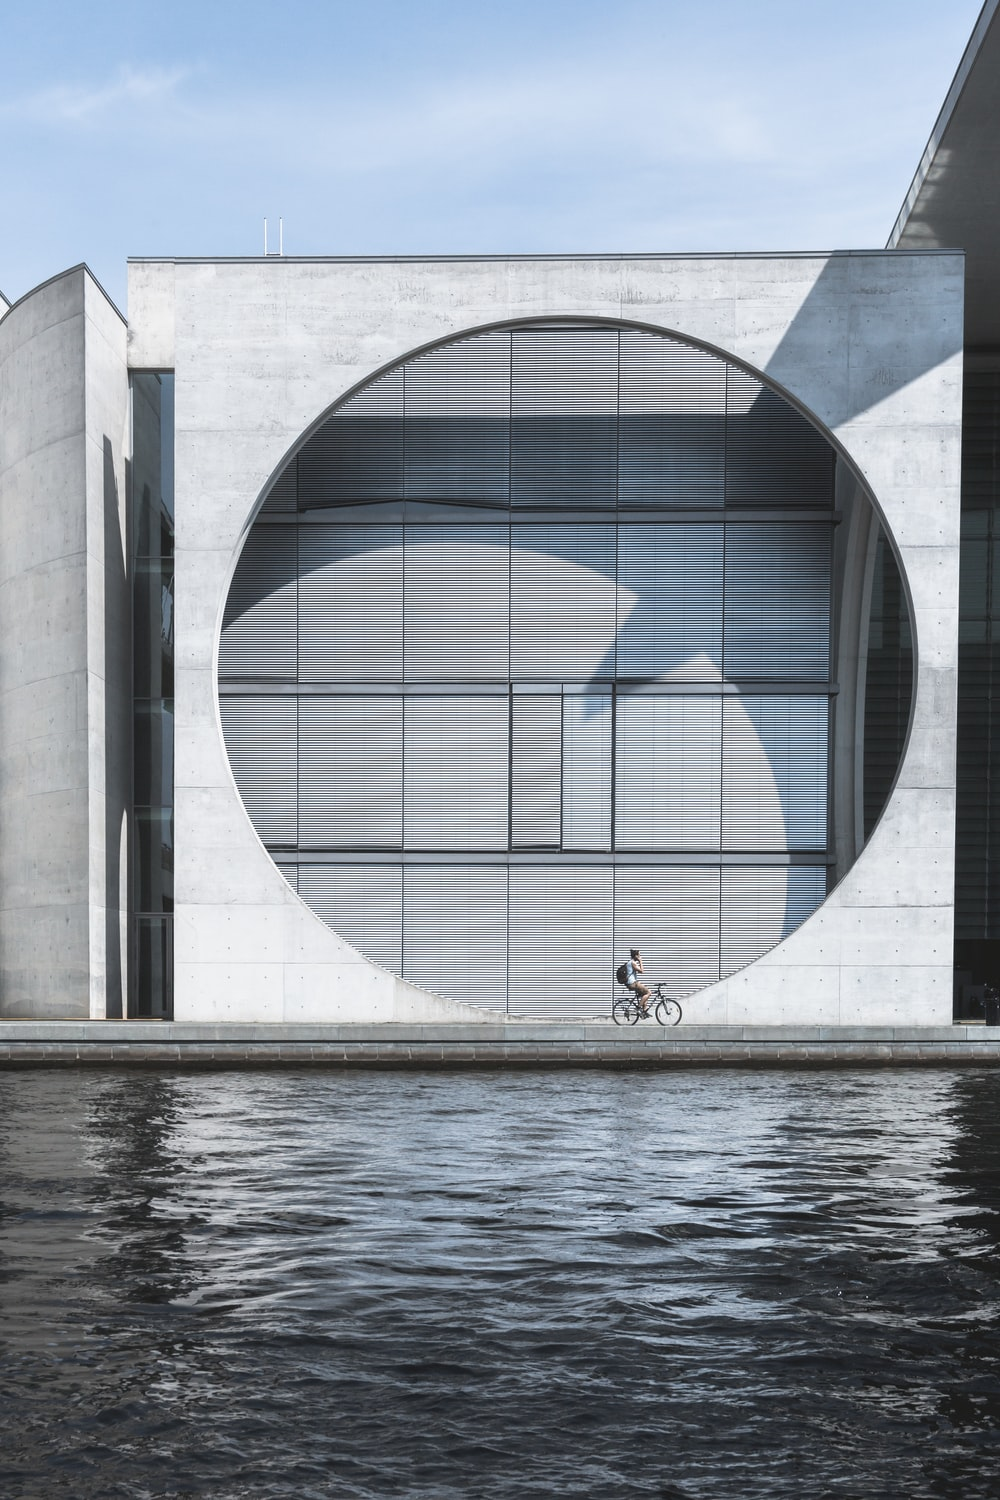 person riding on bike near water